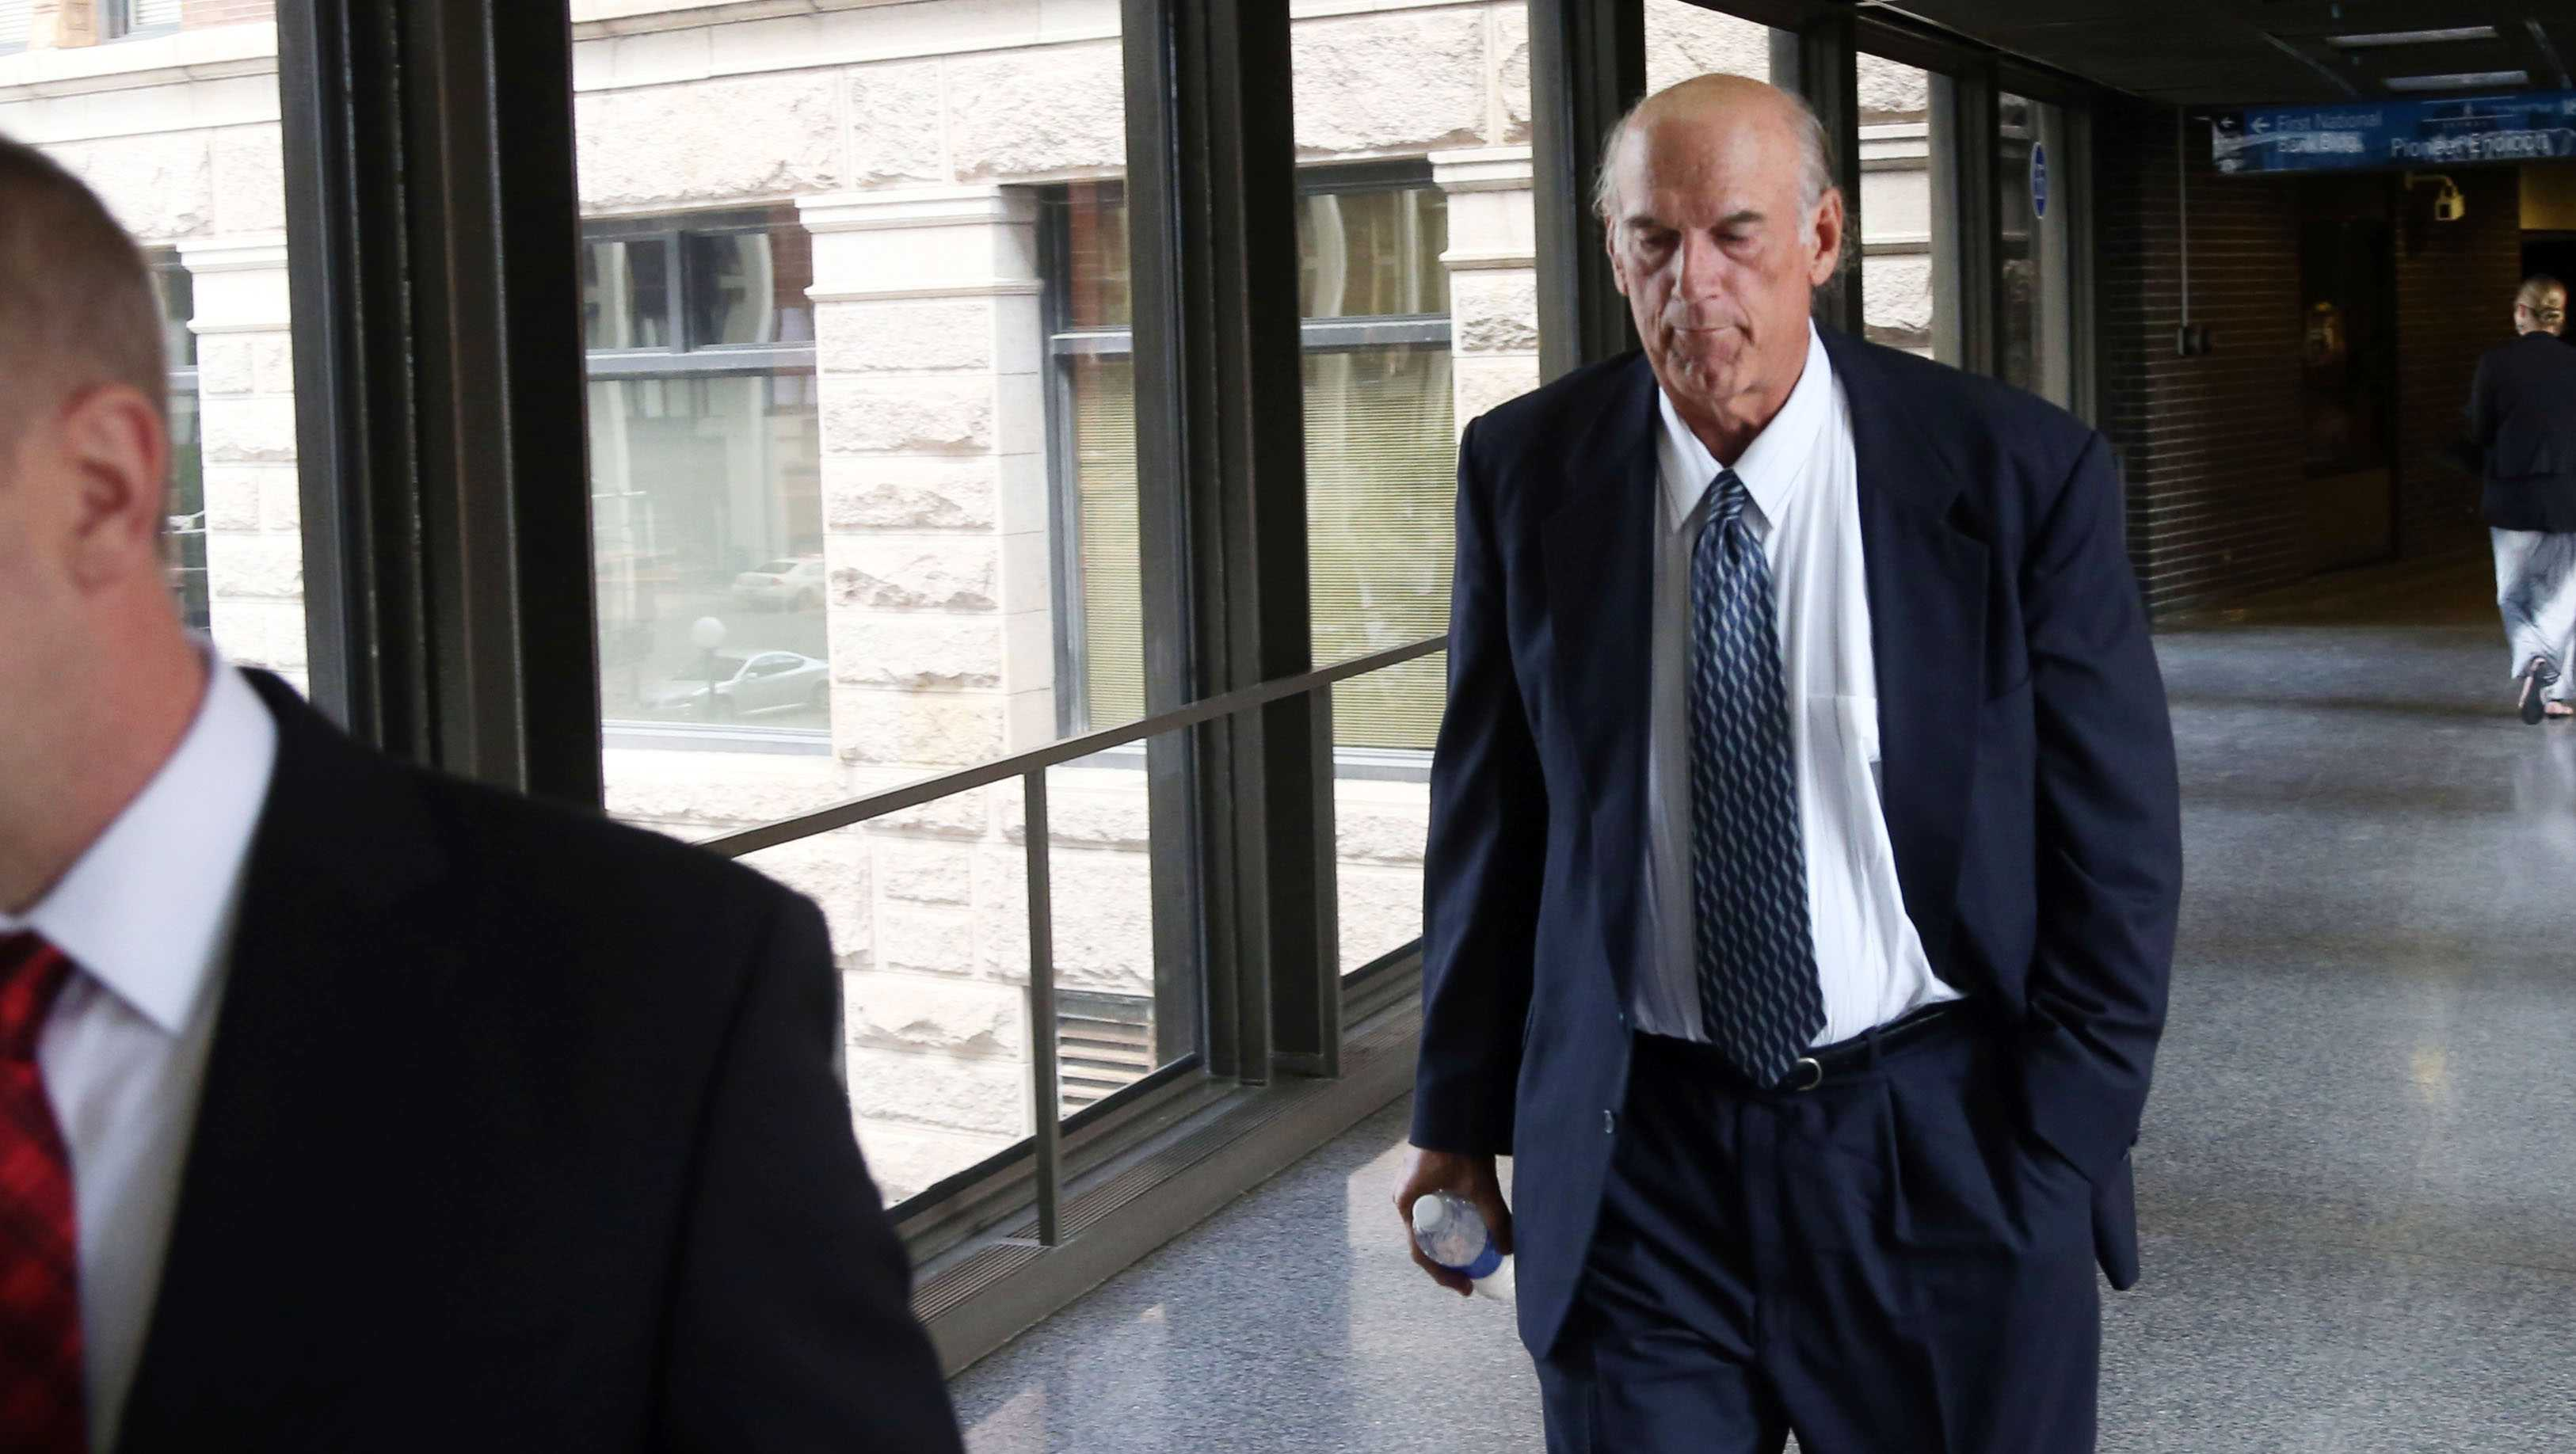 Former Minnesota Gov. Jesse Ventura returns from lunch to the federal courthouse in St. Paul, Minn., Tuesday, July 8, 2014.